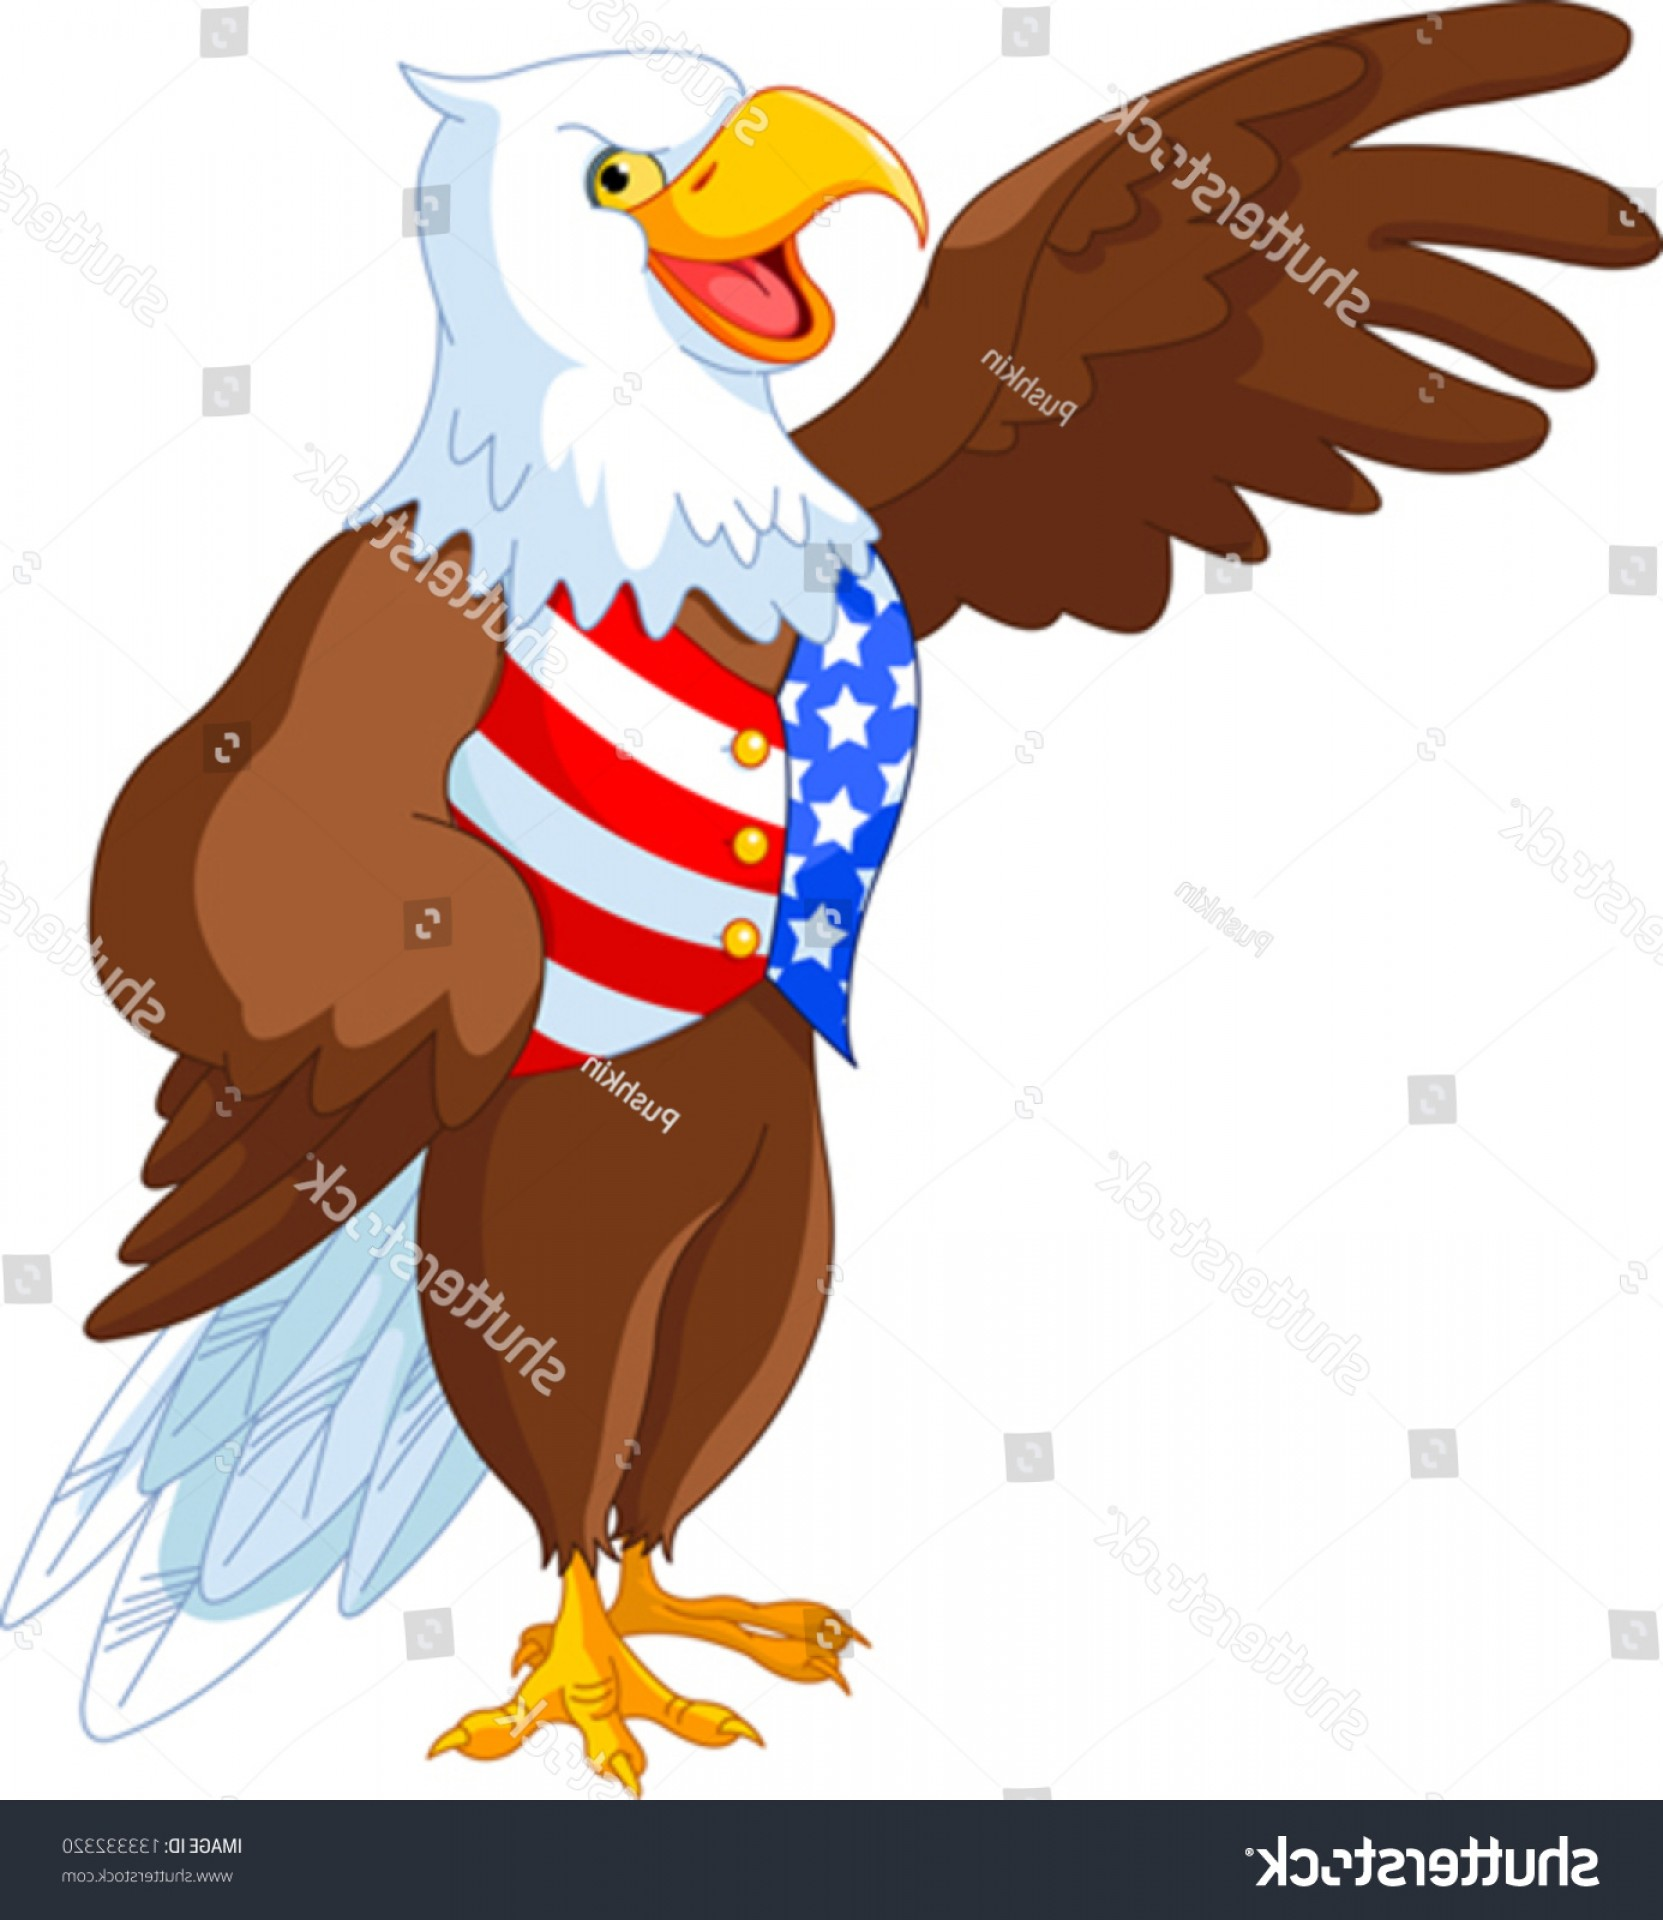 Patriotic Bald Eagle Vector: Patriotic American Bald Eagle Presenting